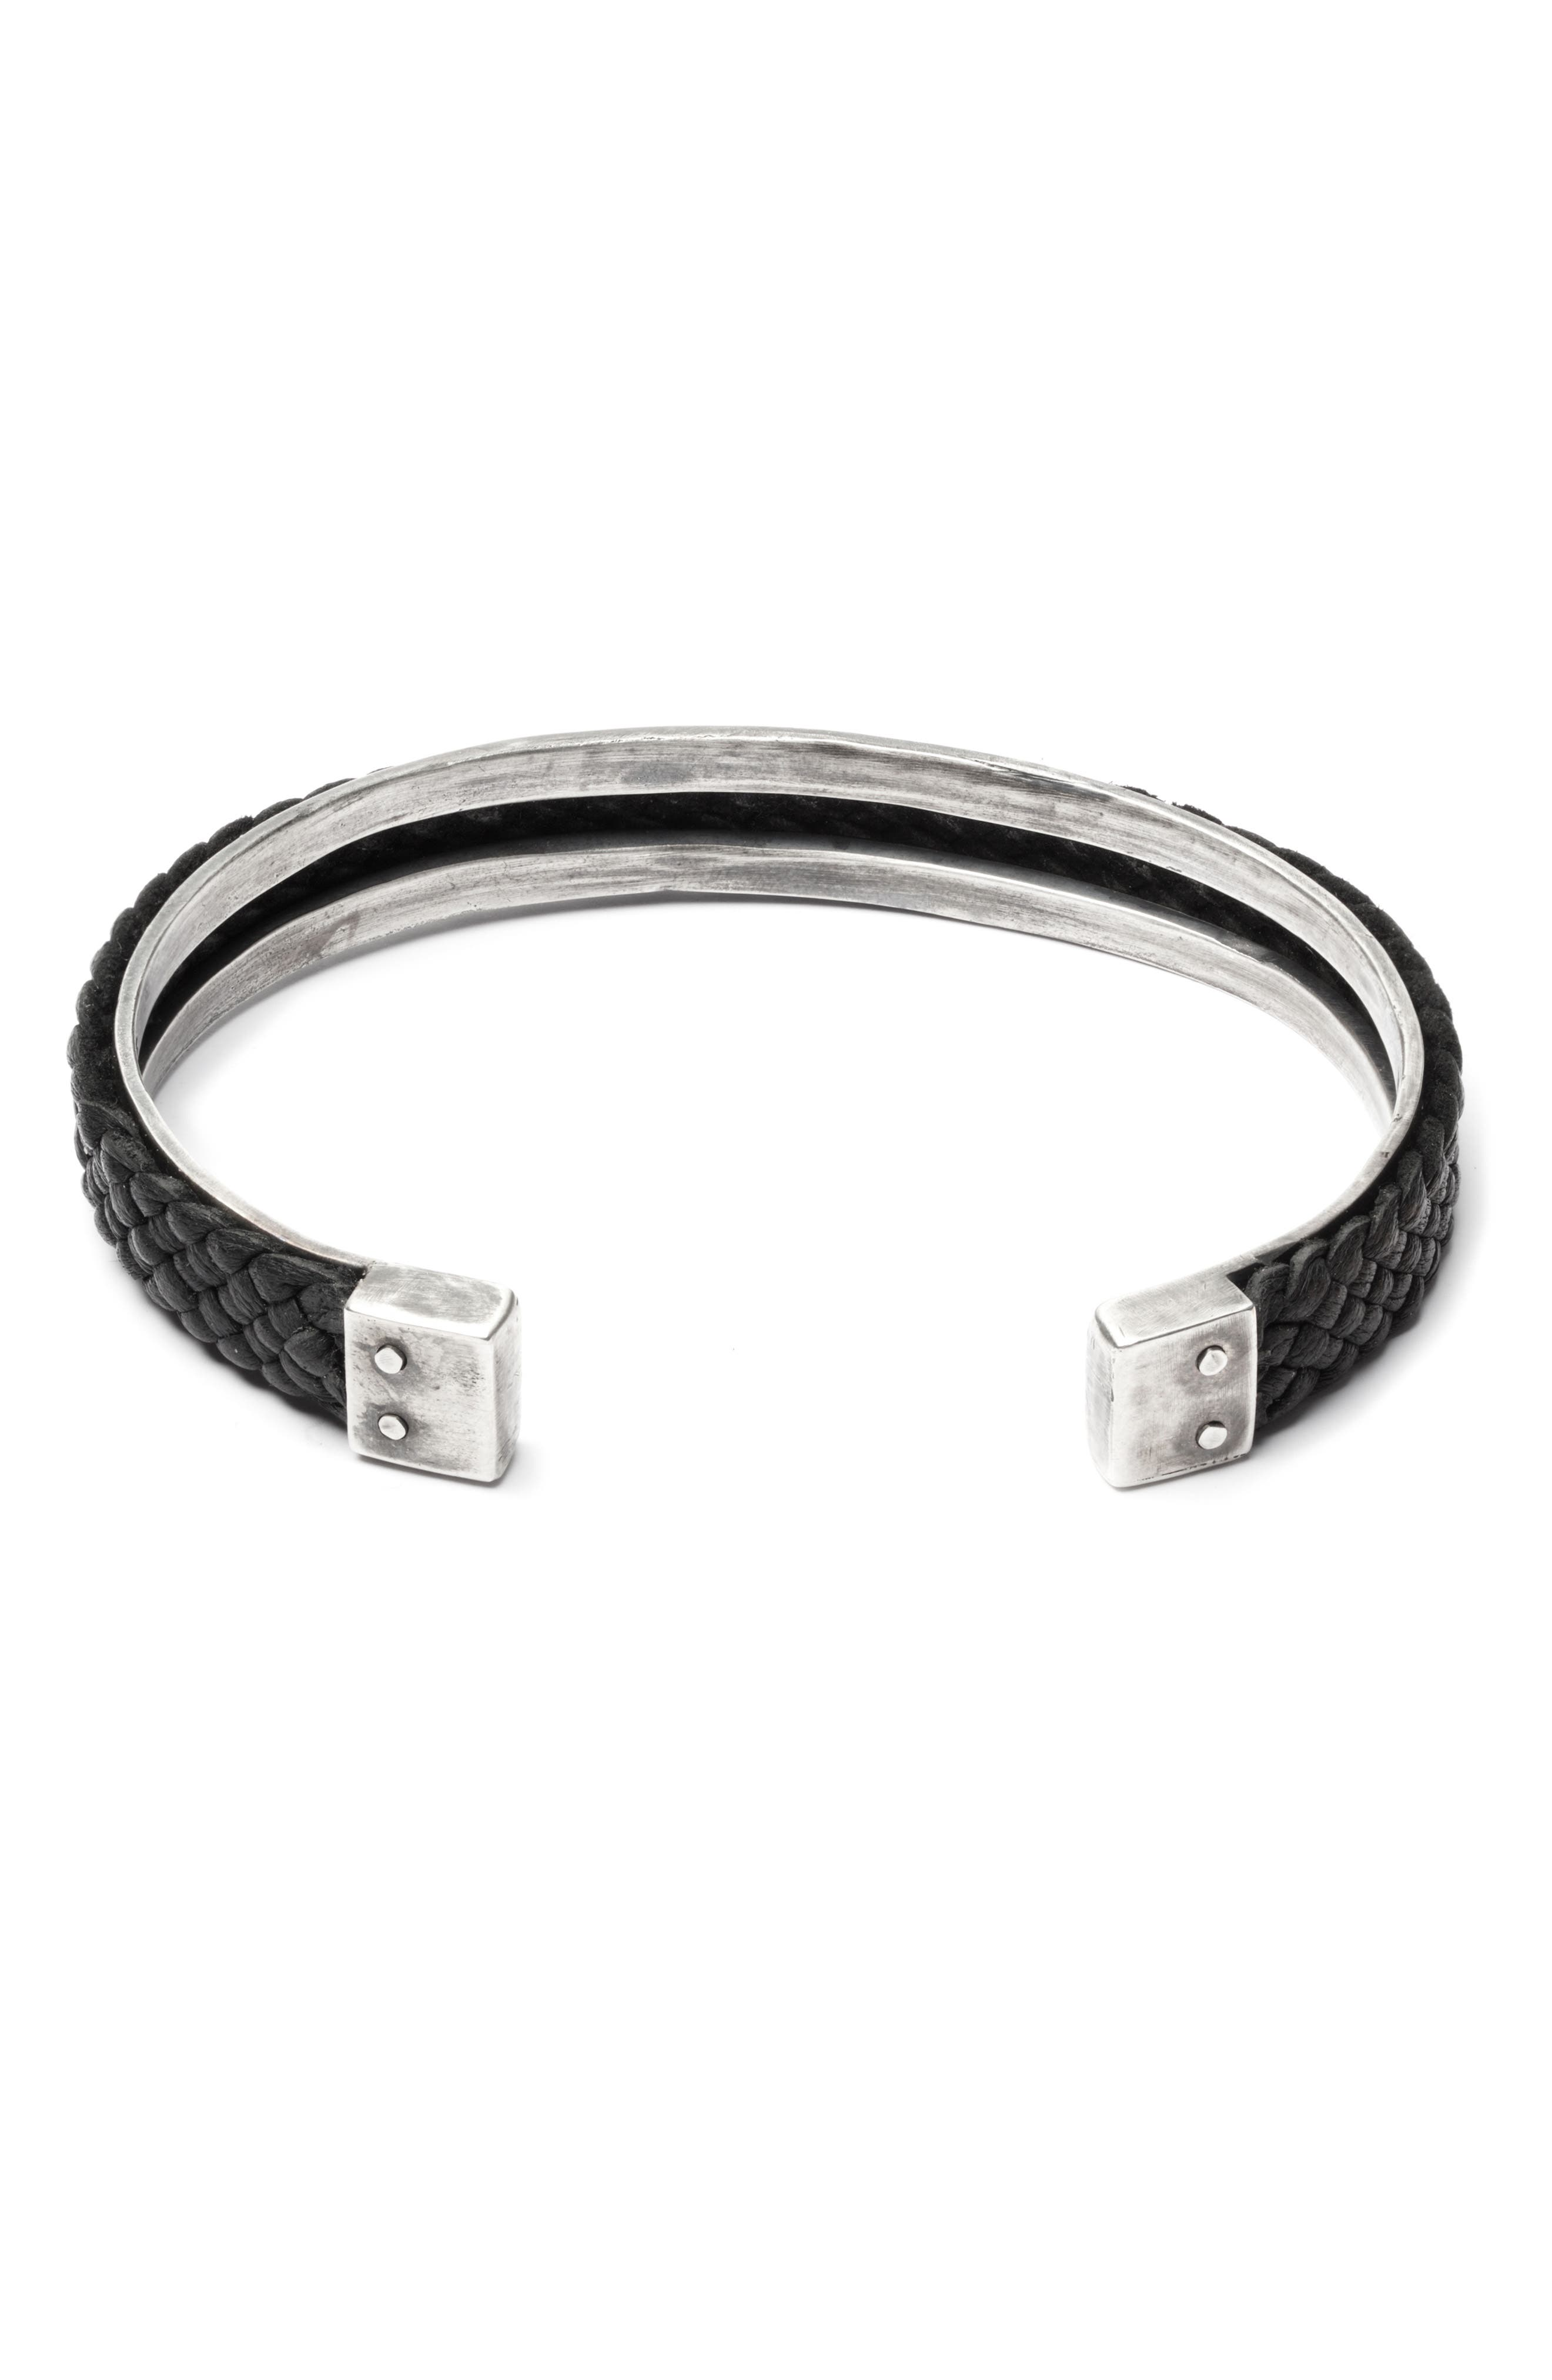 Braided Leather Cuff Bracelet,                             Main thumbnail 1, color,                             Black/Silver